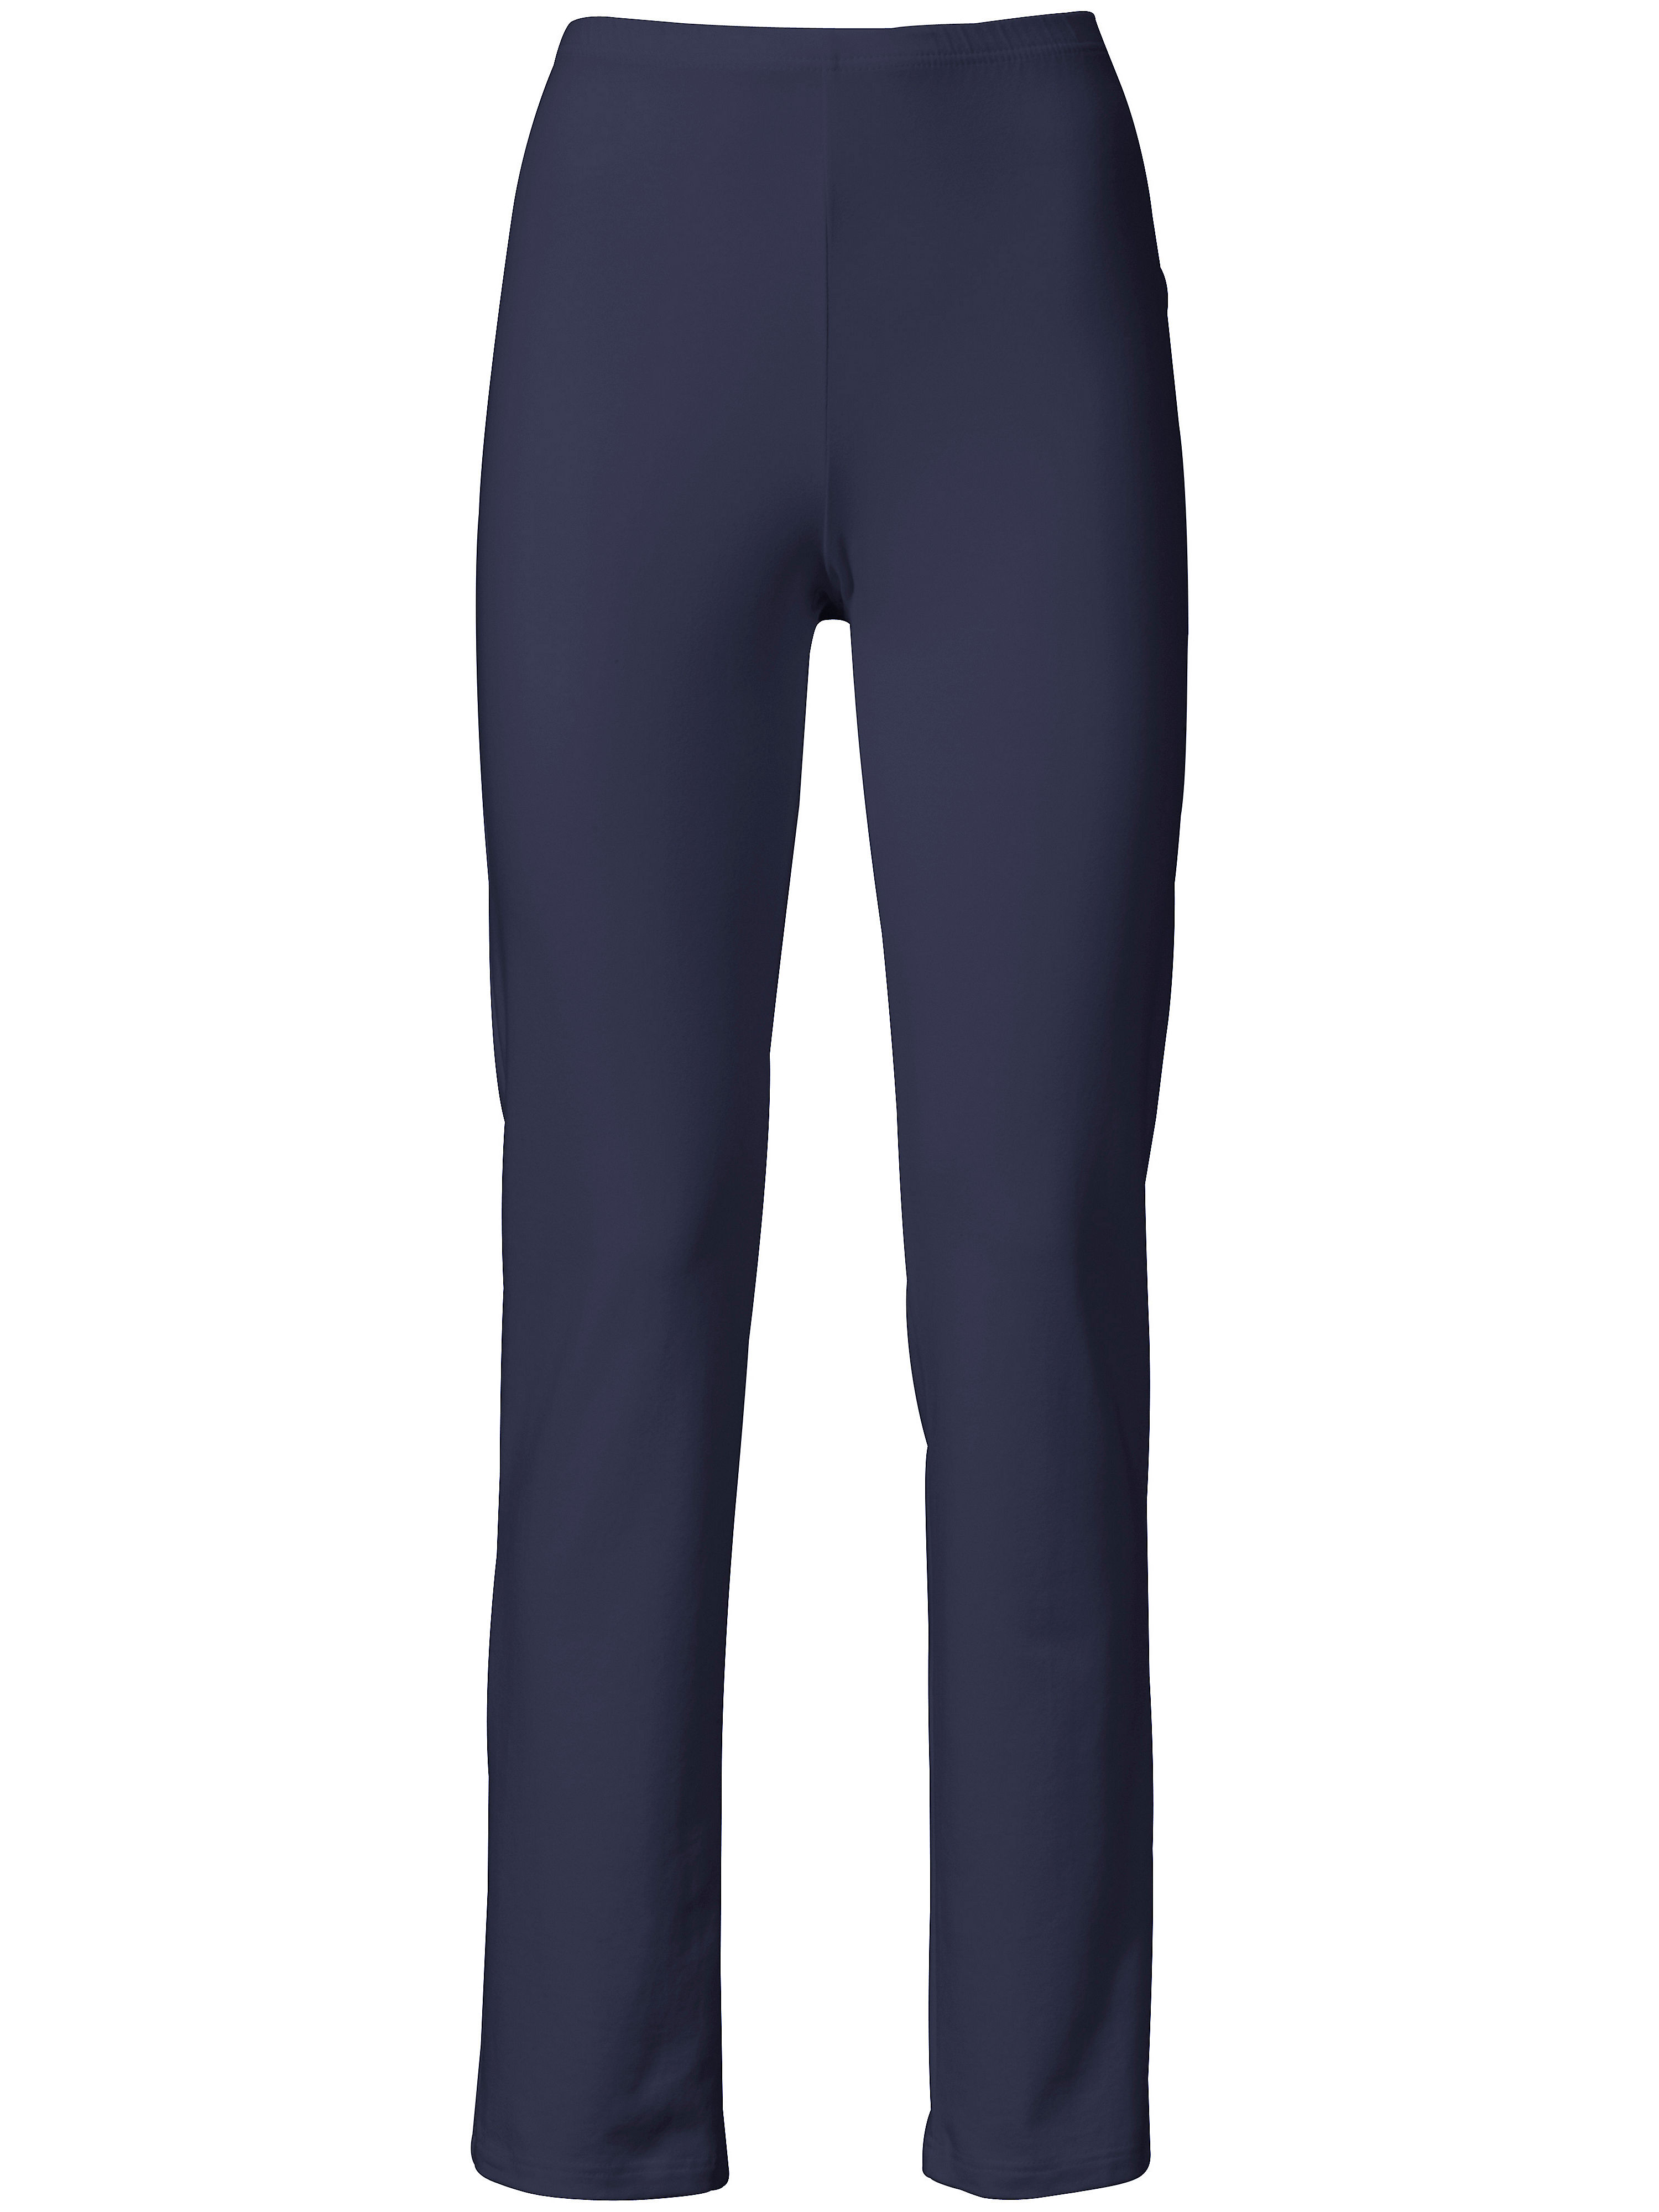 Legging Van Green Cotton blauw